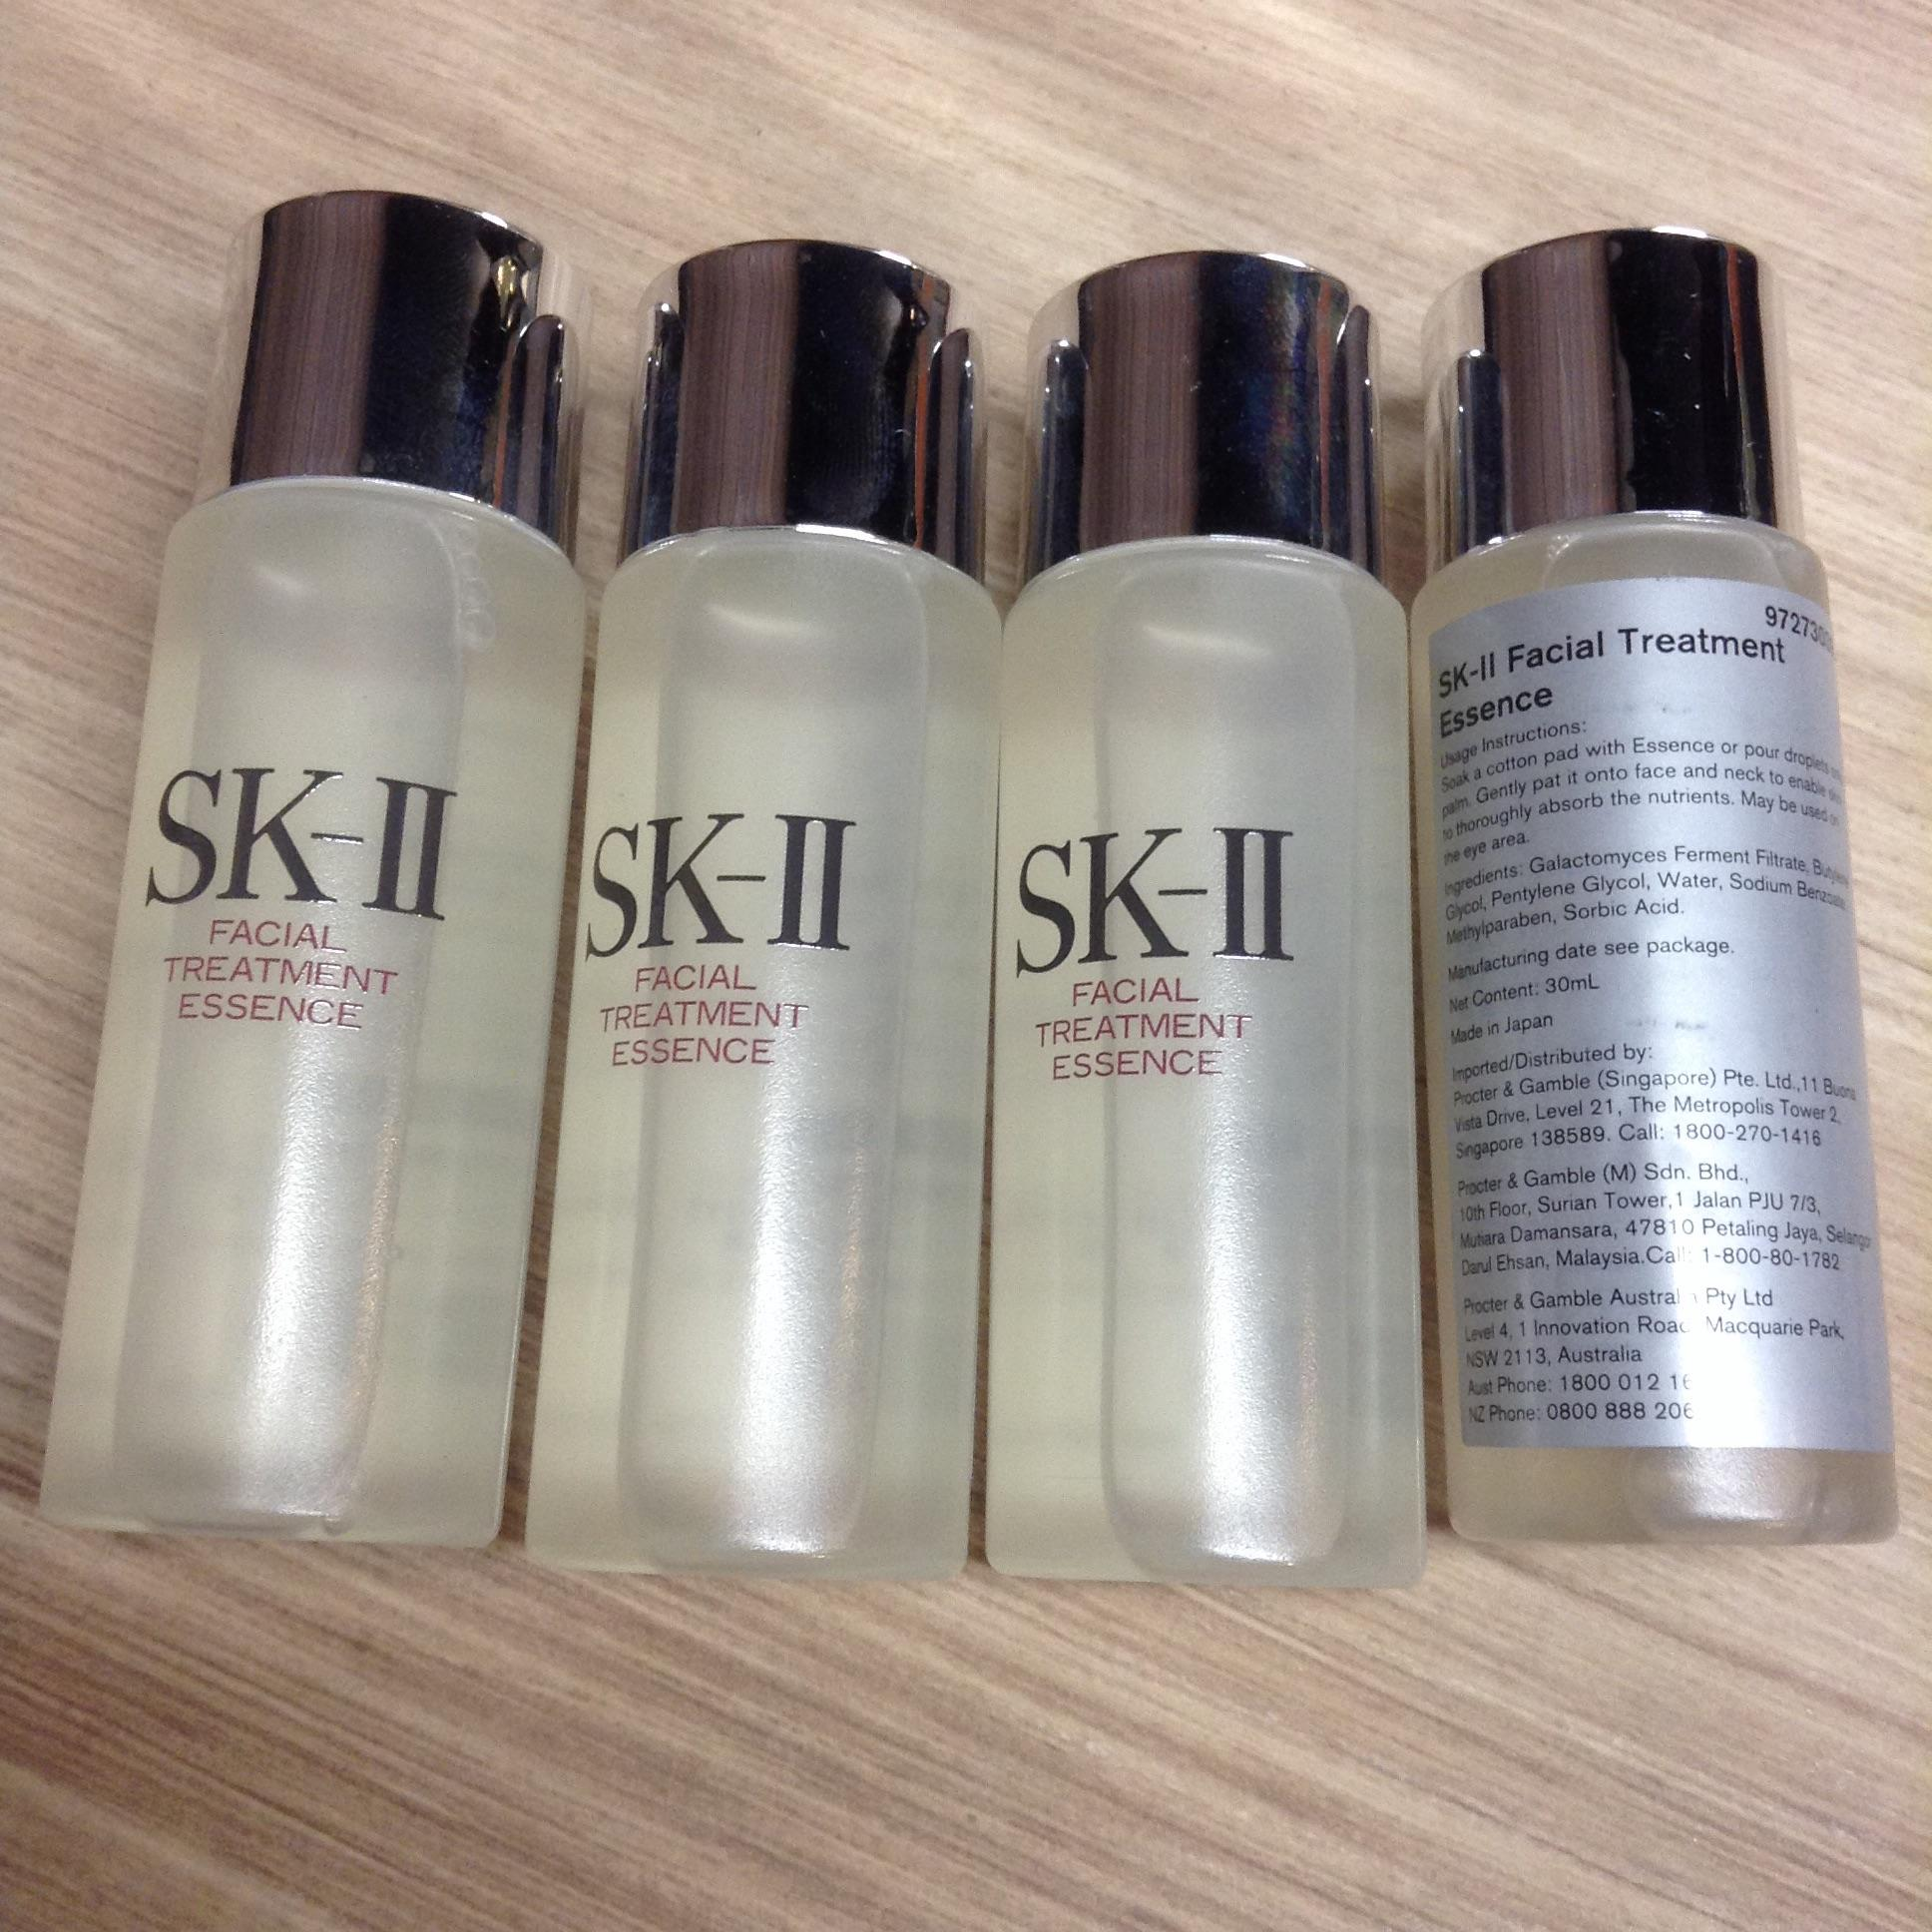 SK-II FACIAL TREATMENT ESSENCE 30 ml